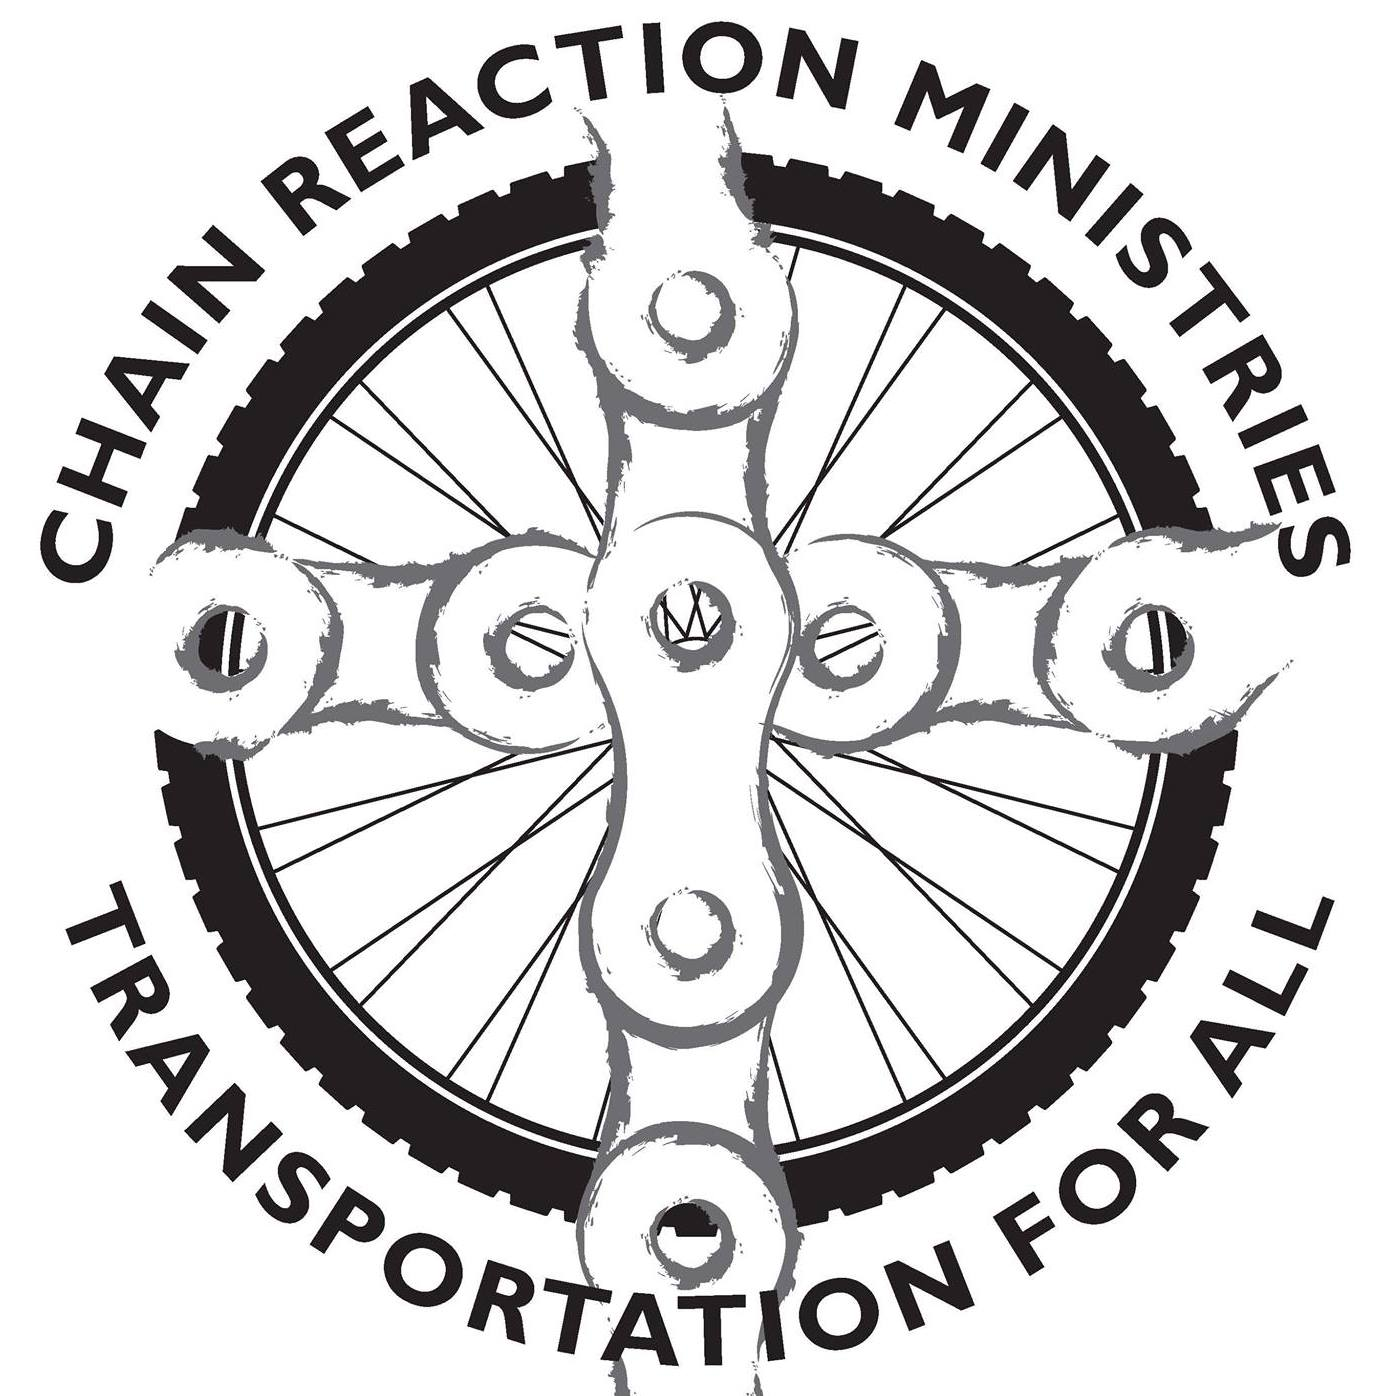 About - Find out about Chain Reaction Ministries, our mission, our methods, and the results of over a decade of advocacy.